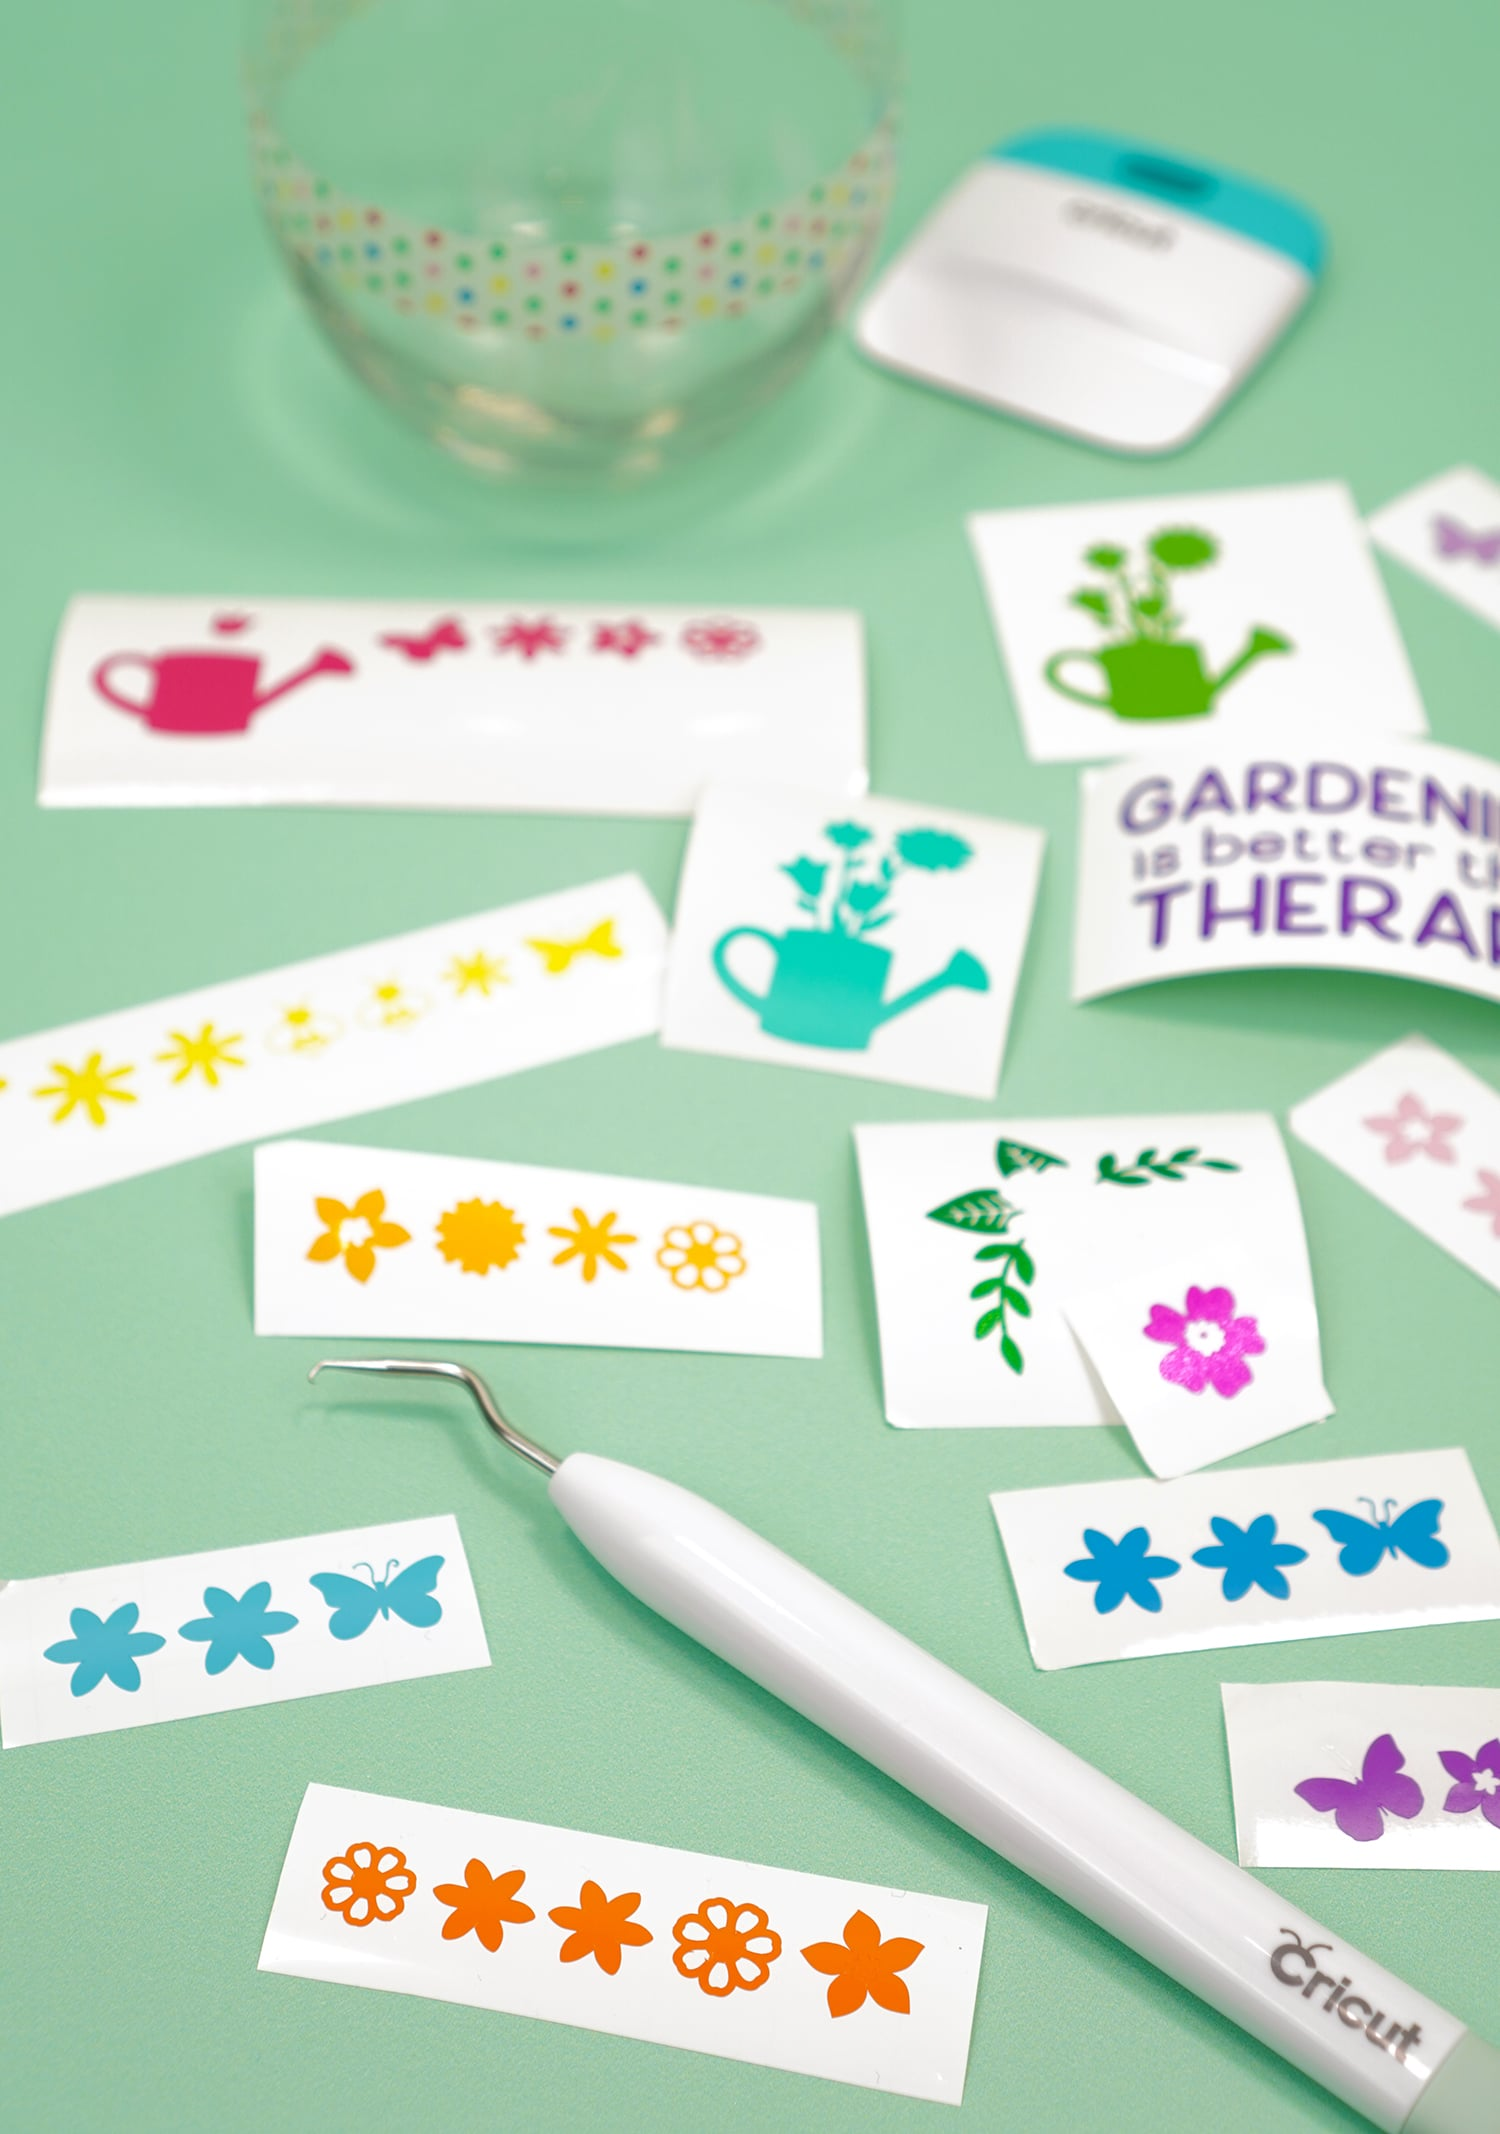 Strips of weeded flower vinyl designs with weeding tool on mint green background